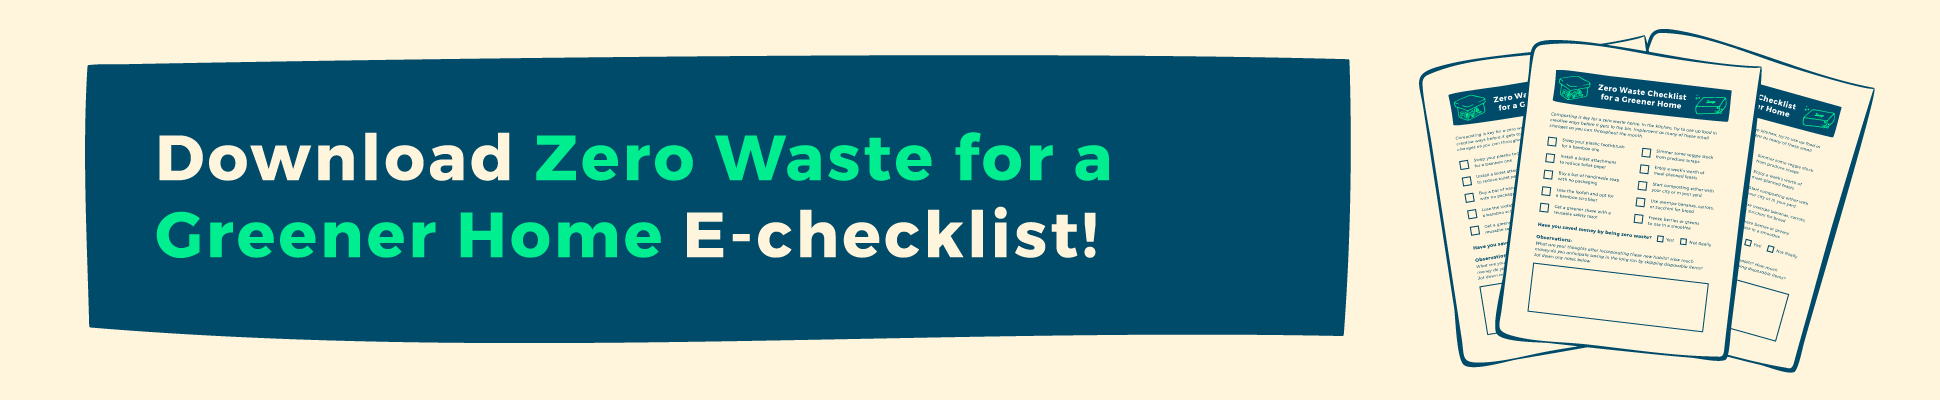 zero-waste-checklist-banner-home